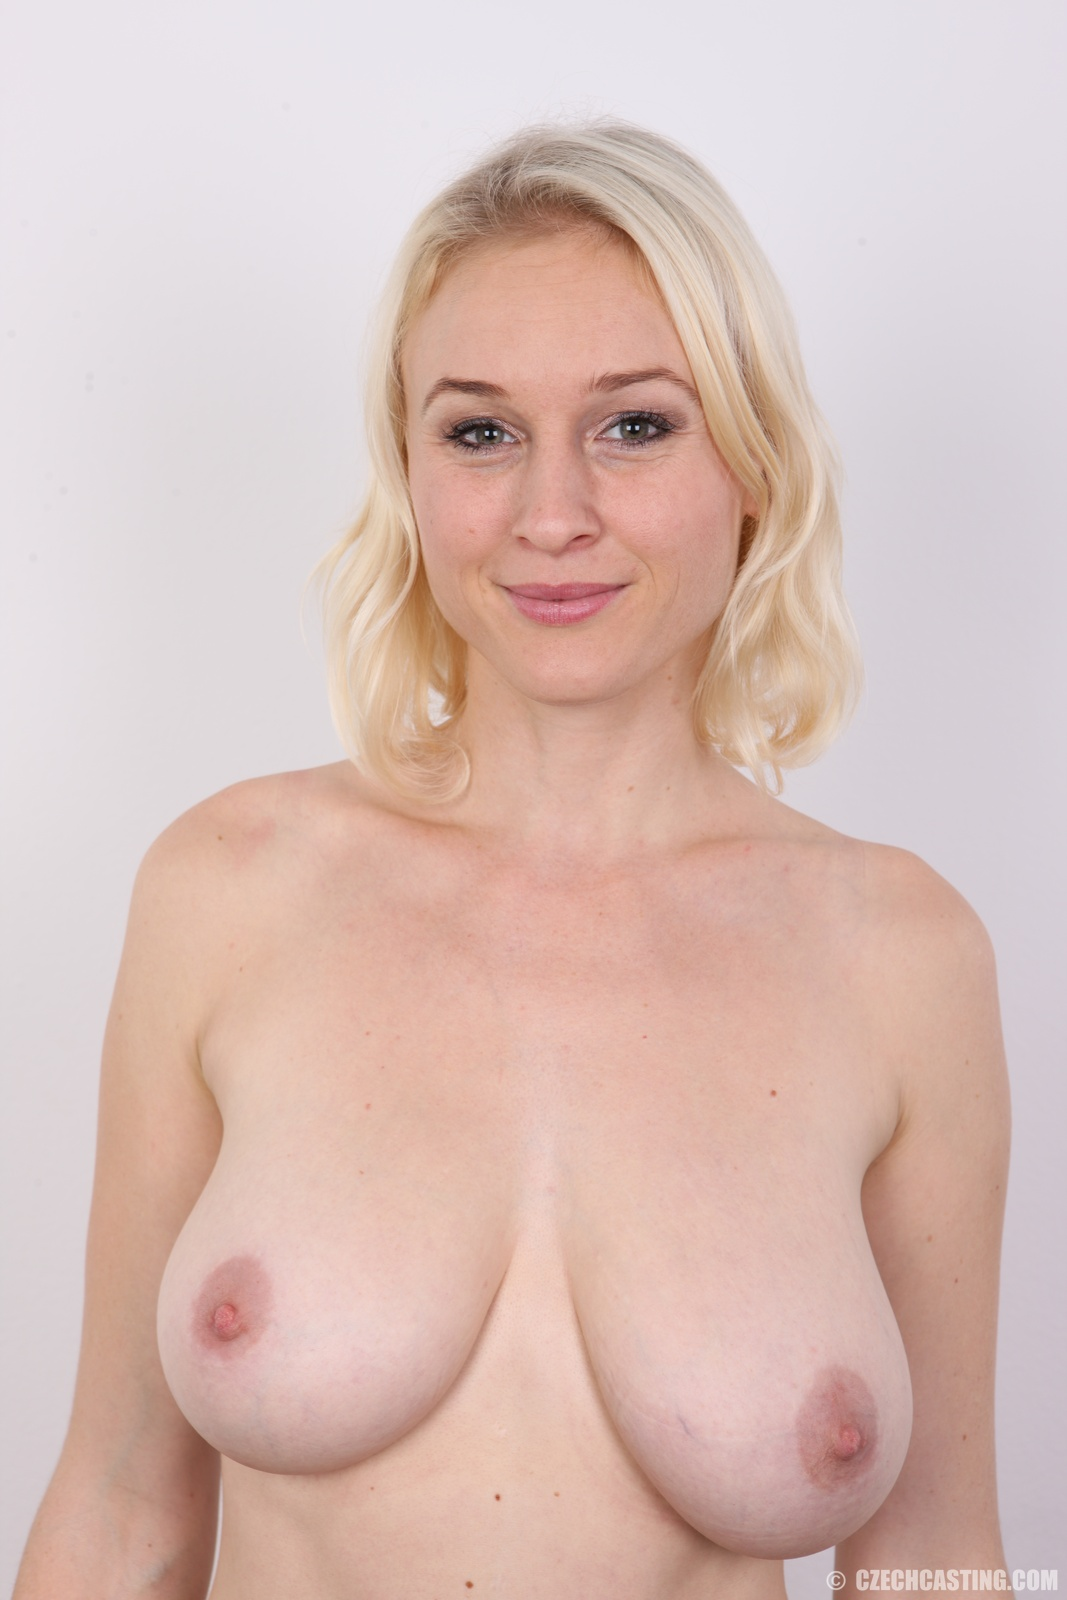 Petra mis casting audition big boobs blonde gives handjob - 1 8